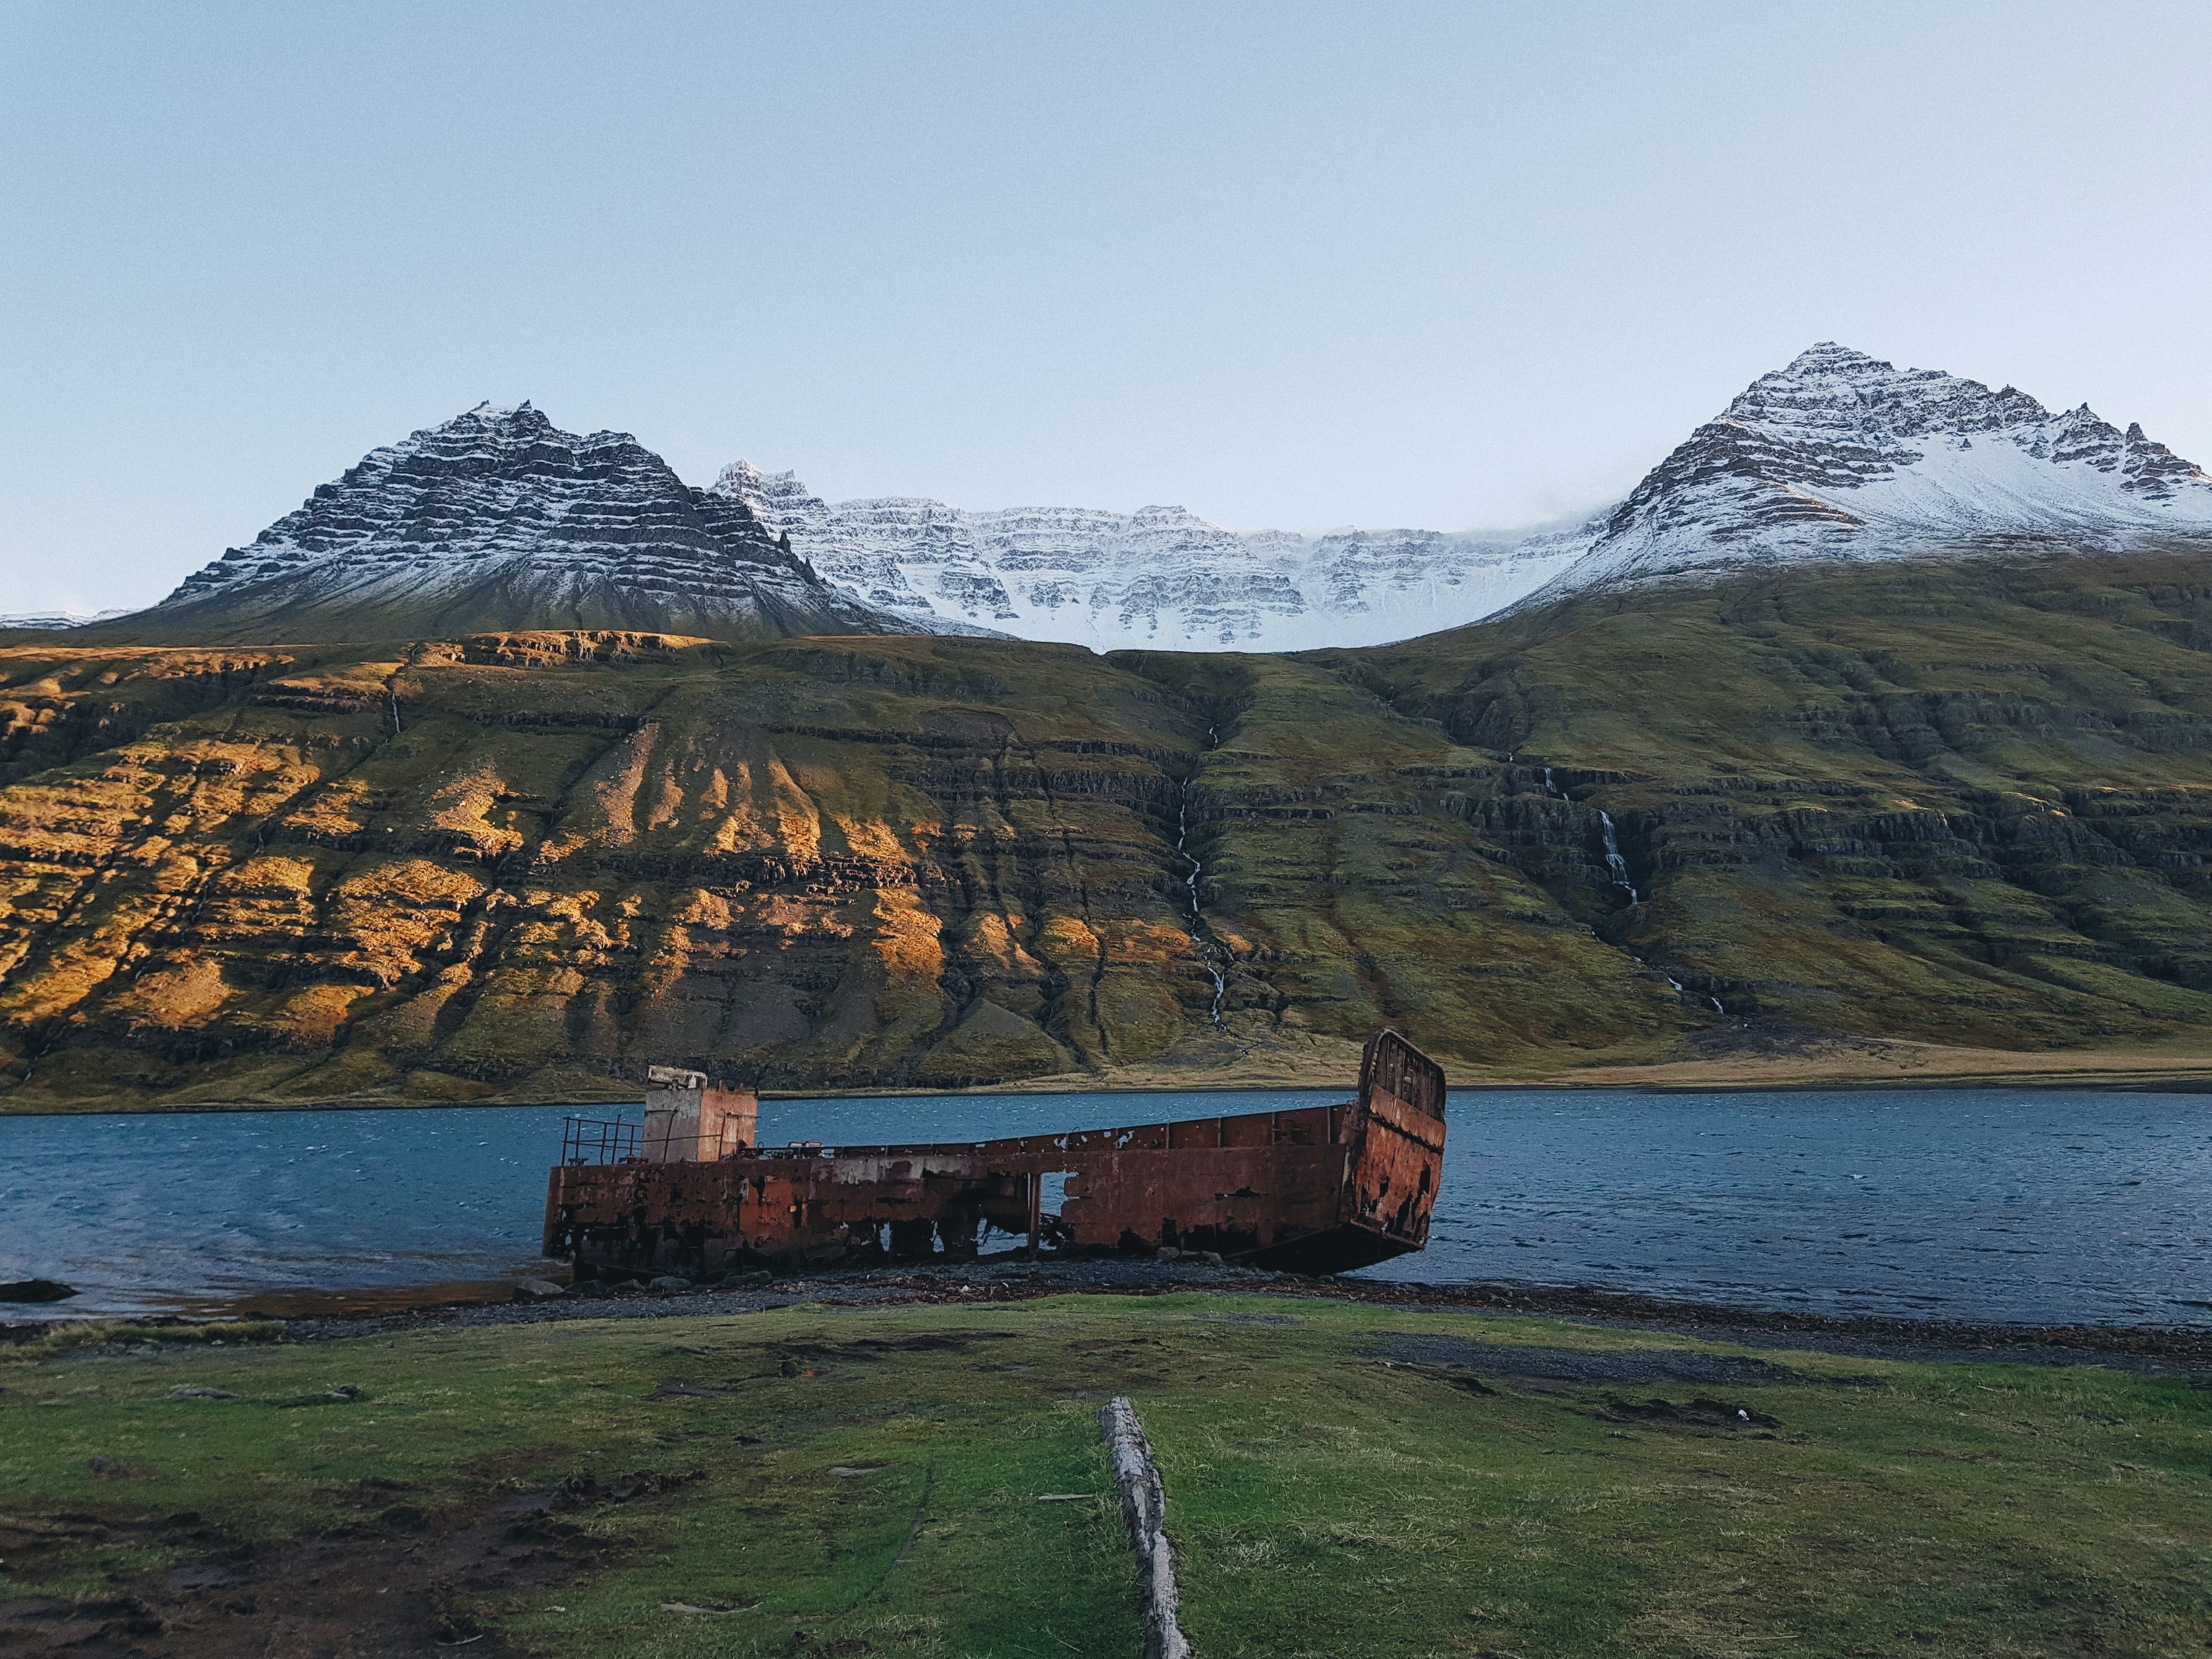 wrecked red ship near body of water during daytime